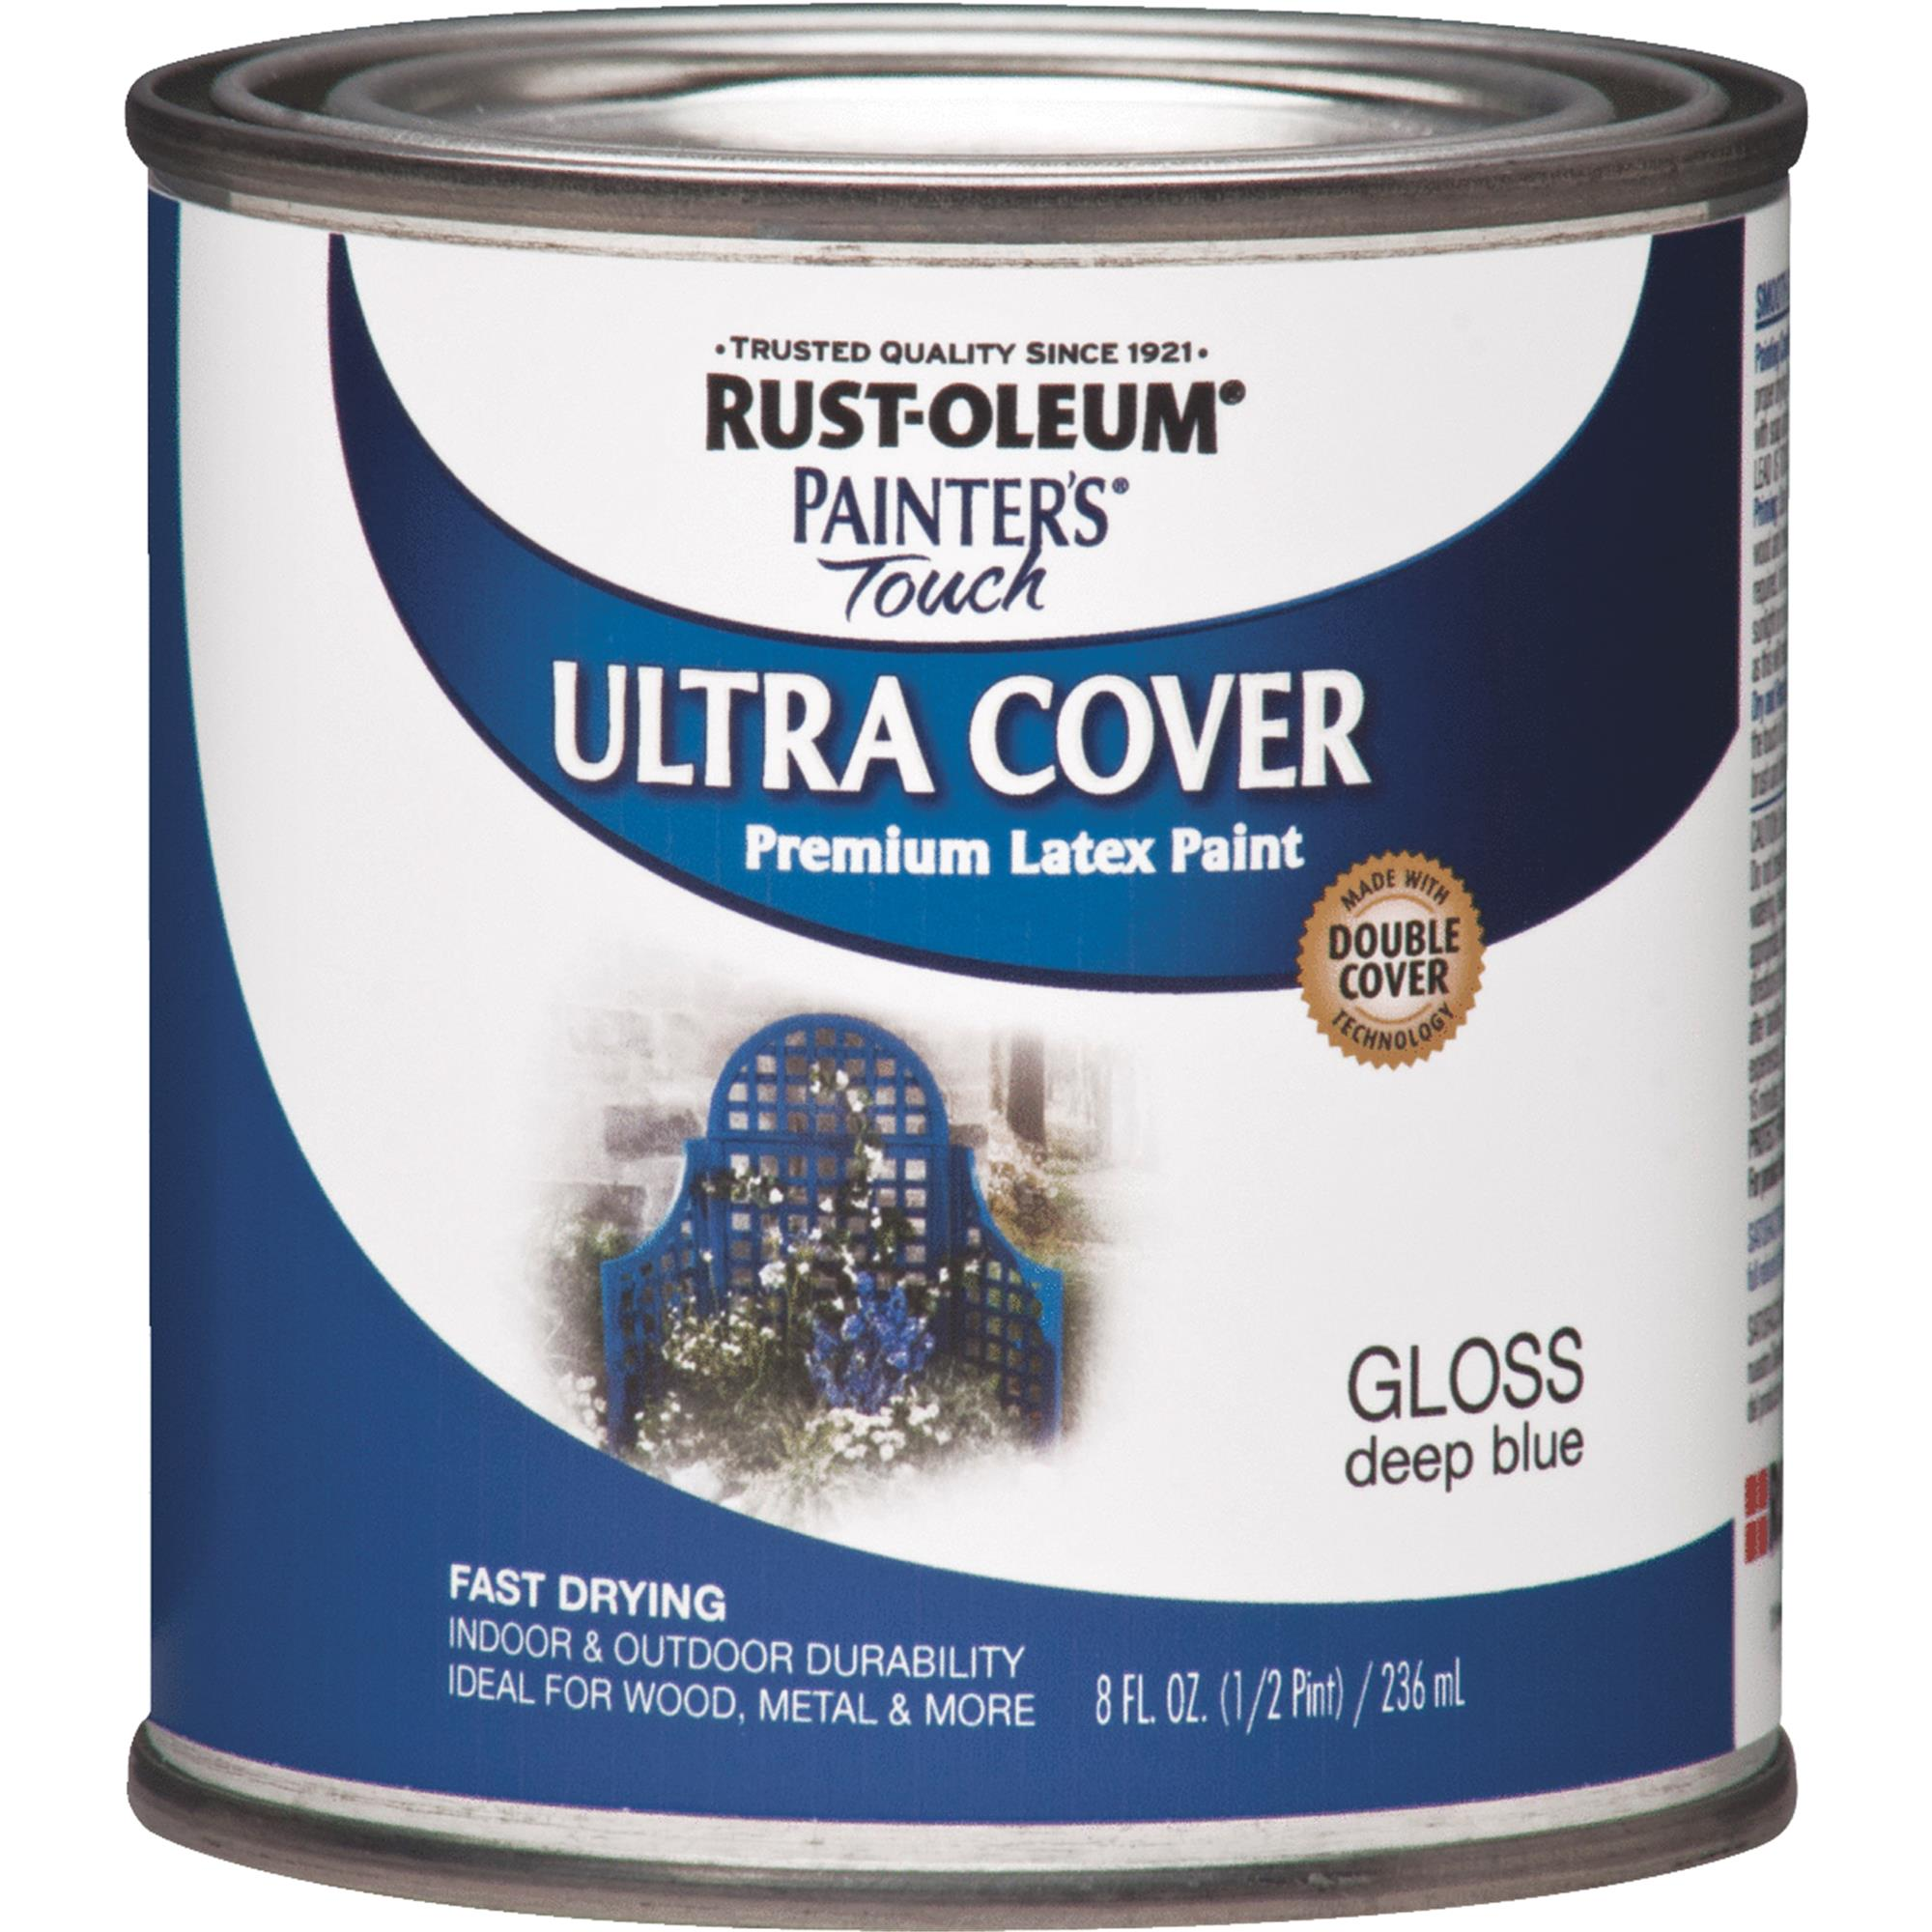 Rust-Oleum Painter's Touch 2X Ultra Cover Premium Latex Paint